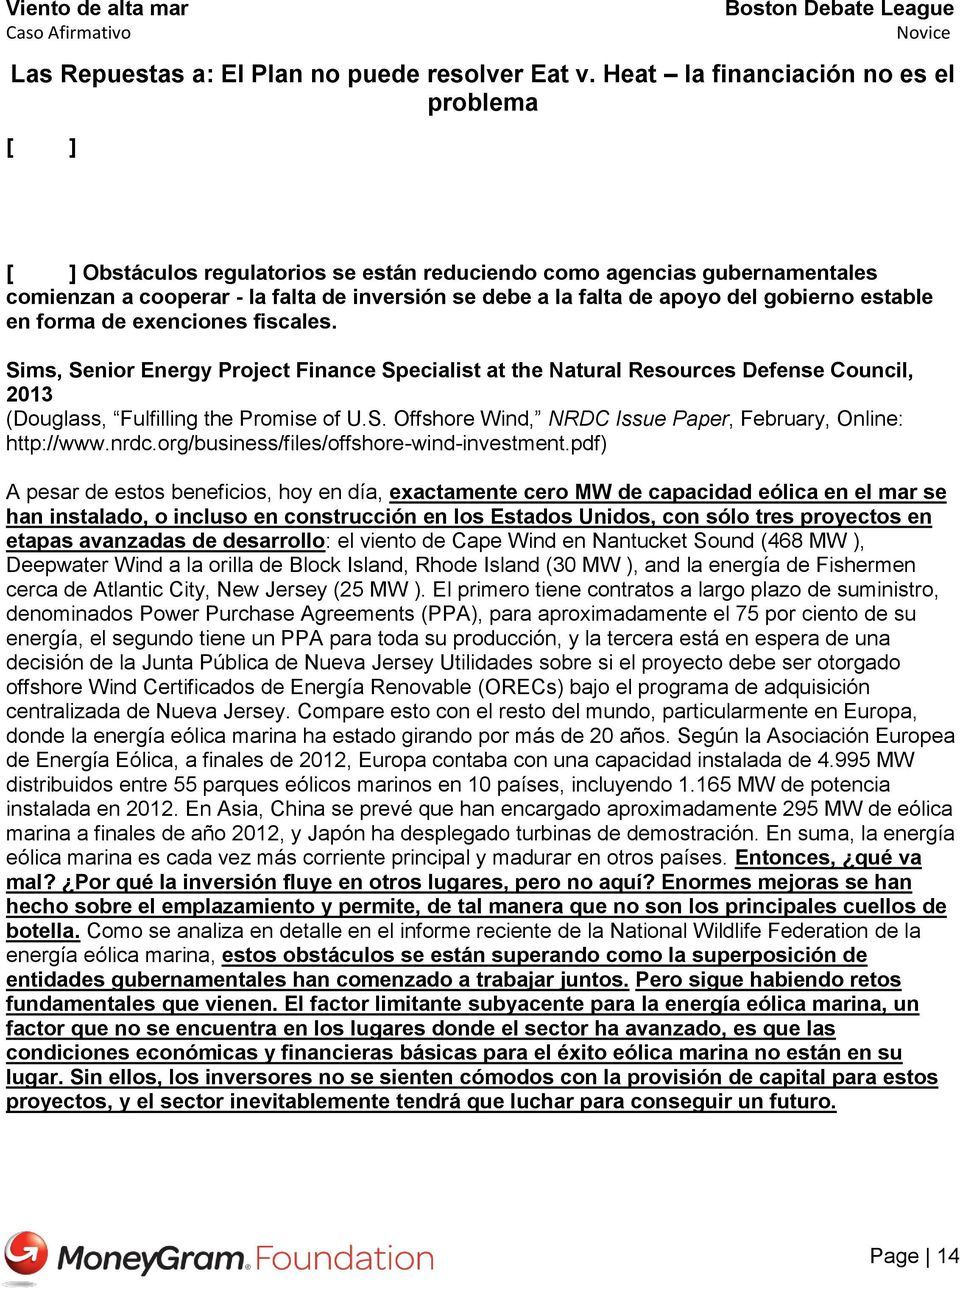 gobierno estable en forma de exenciones fiscales. Sims, Senior Energy Project Finance Specialist at the Natural Resources Defense Council, 2013 (Douglass, Fulfilling the Promise of U.S. Offshore Wind, NRDC Issue Paper, February, Online: http://www.